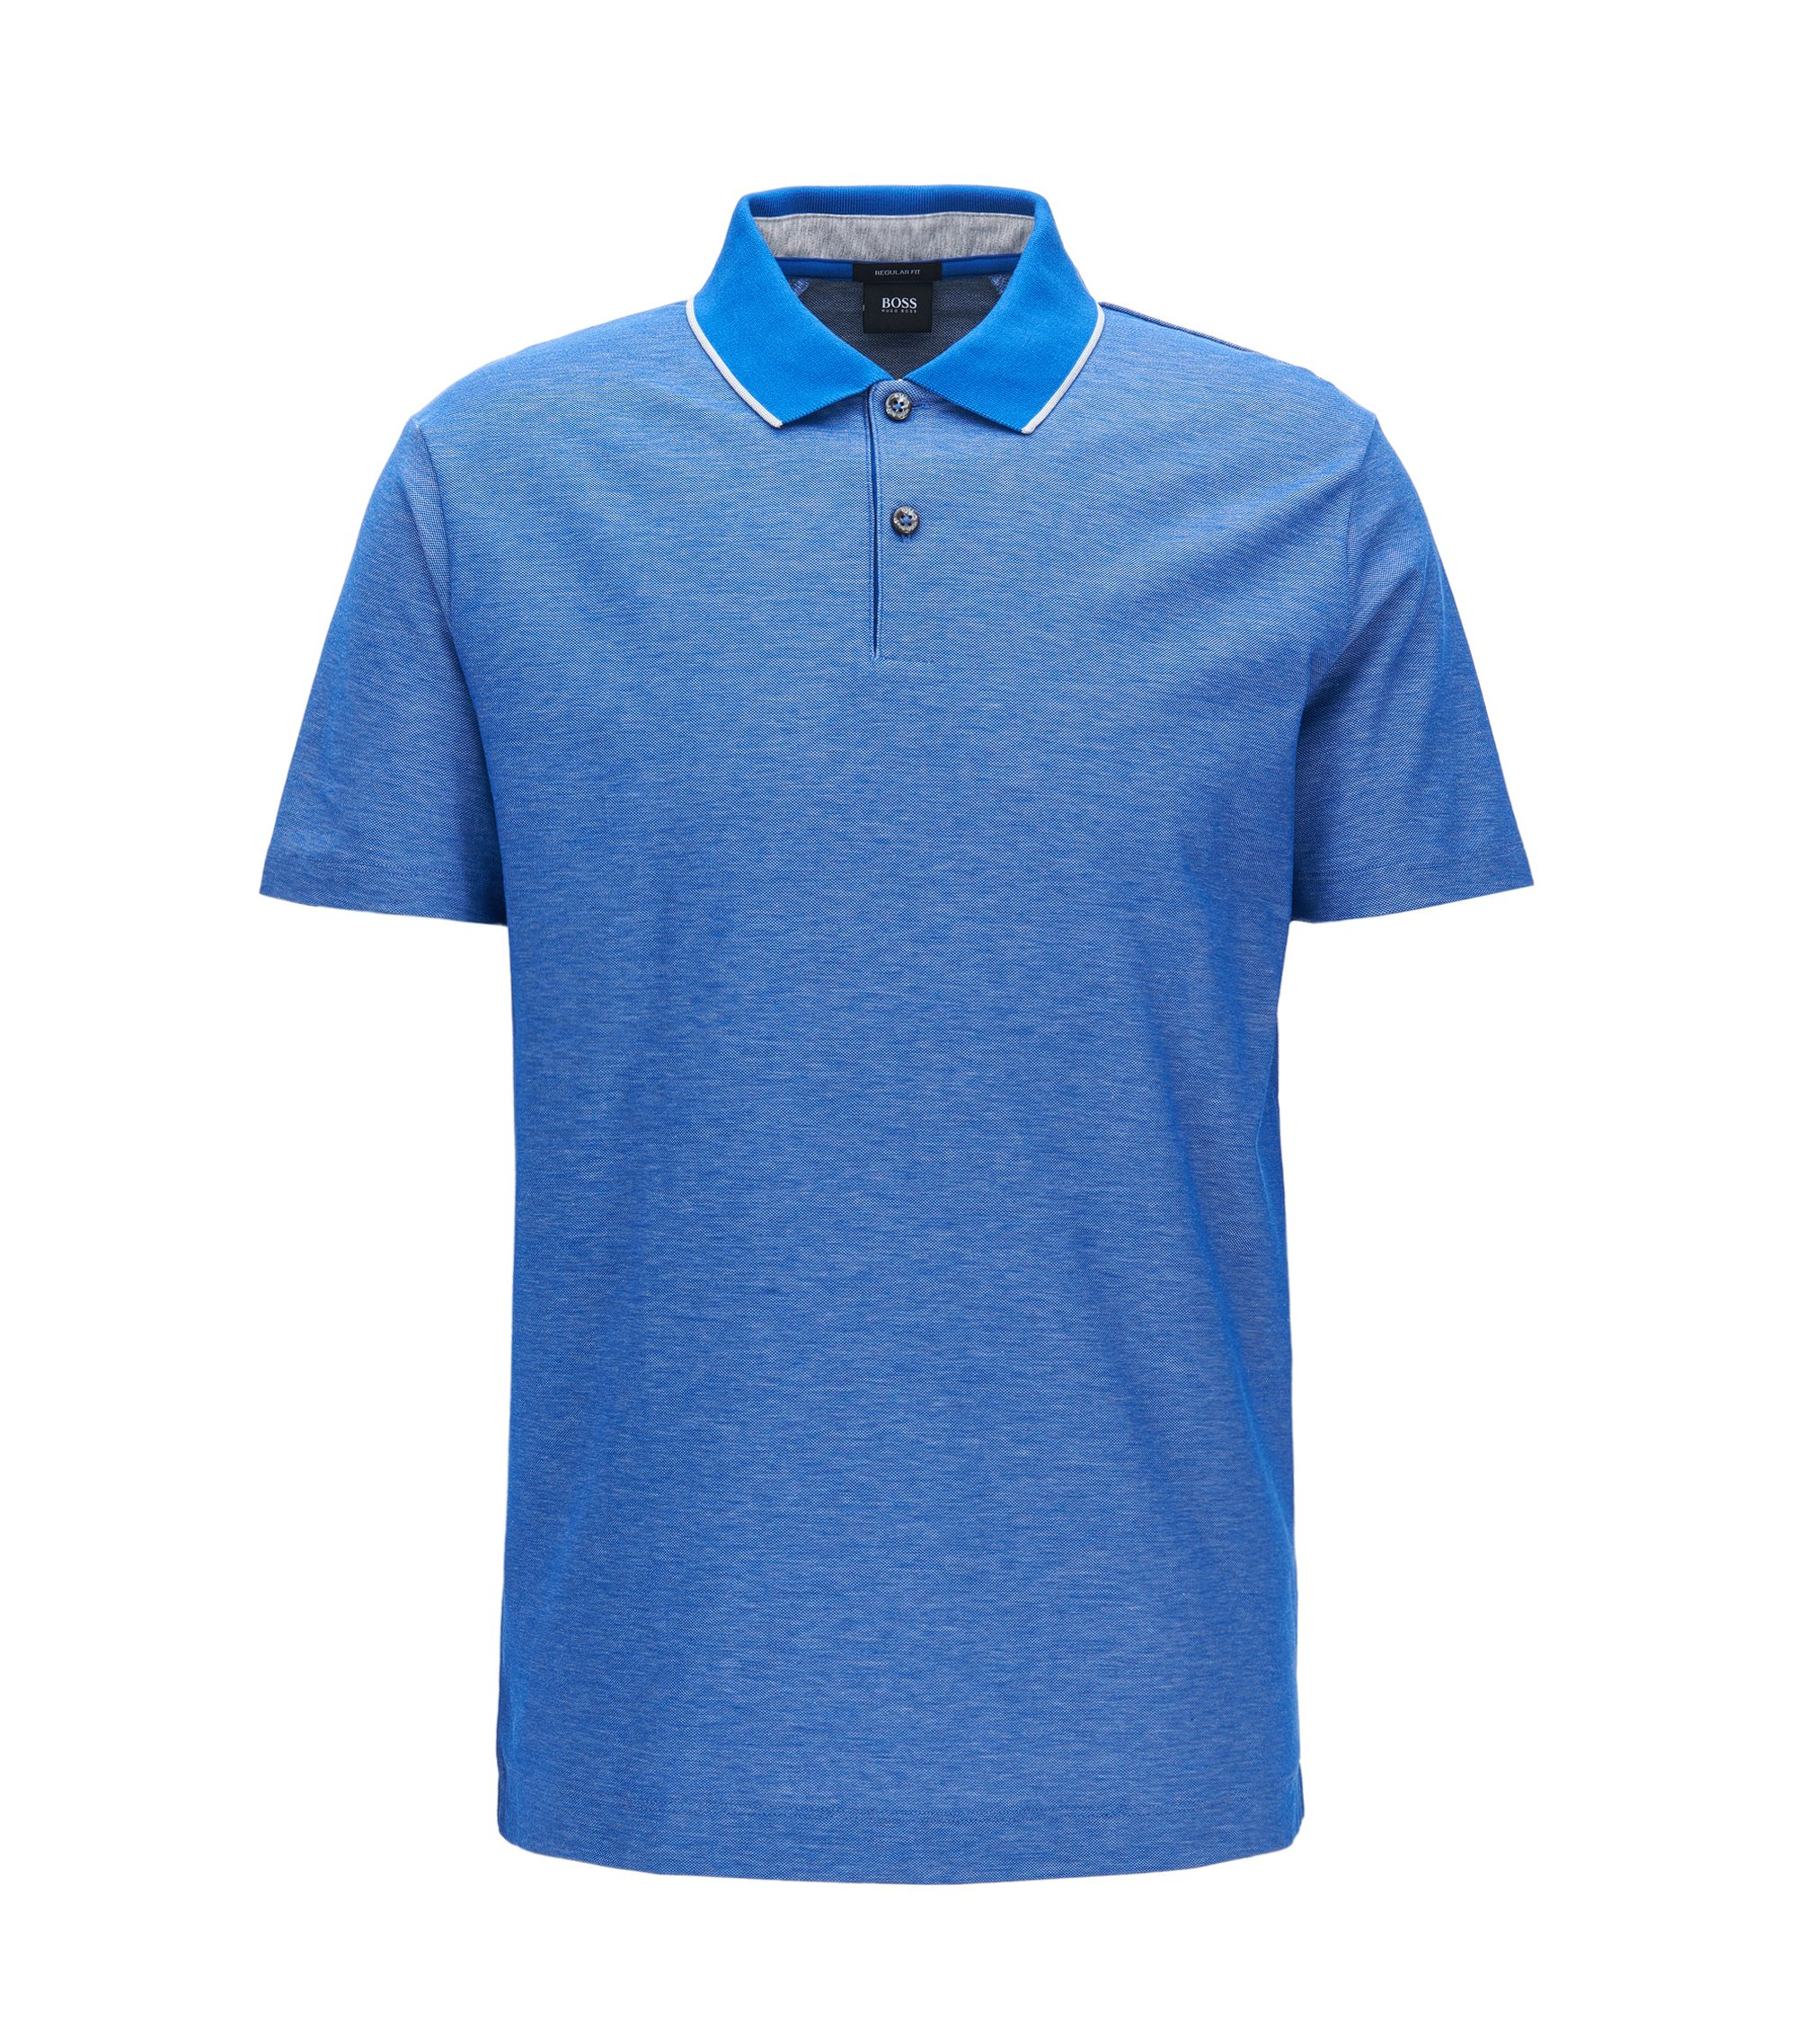 Regular-Fit Poloshirt aus Baumwolle, Blau